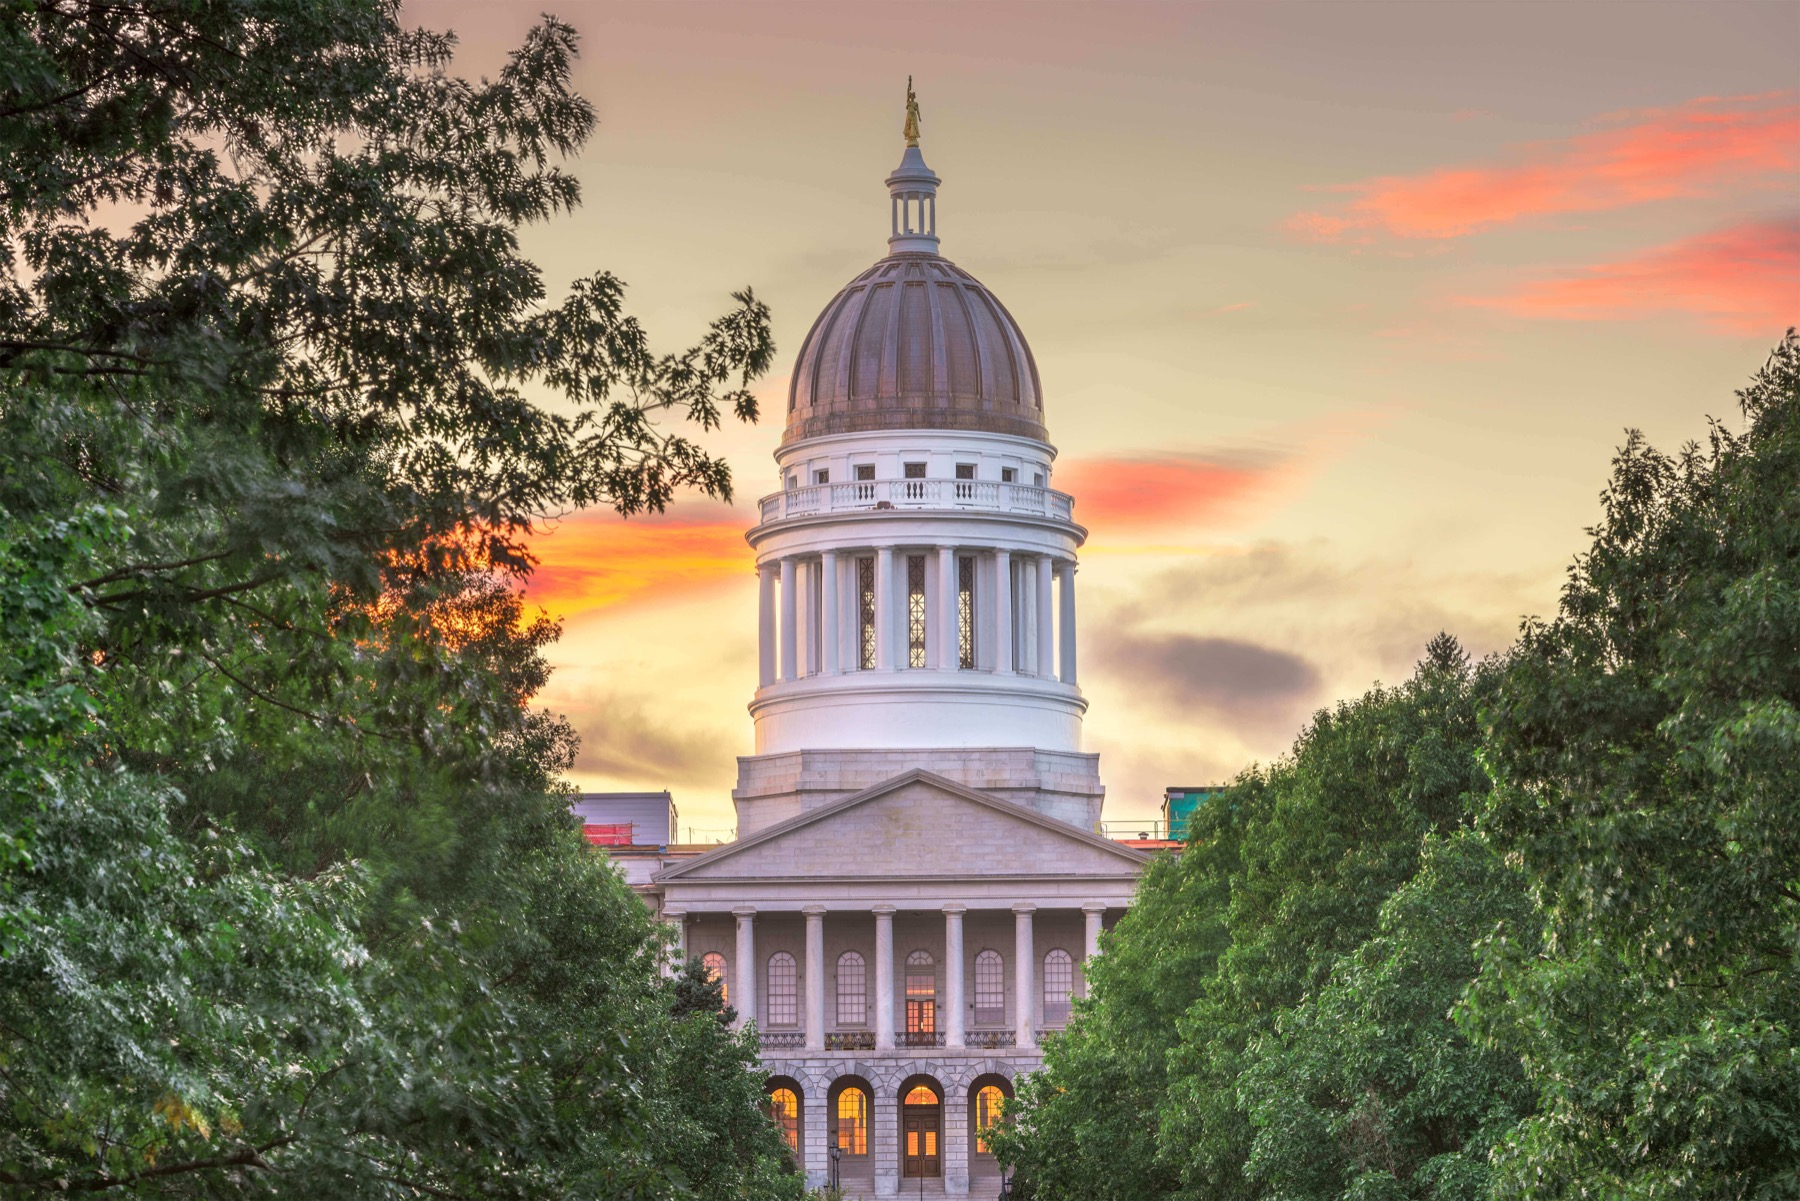 Exterior of the maine state capitol building at dusk